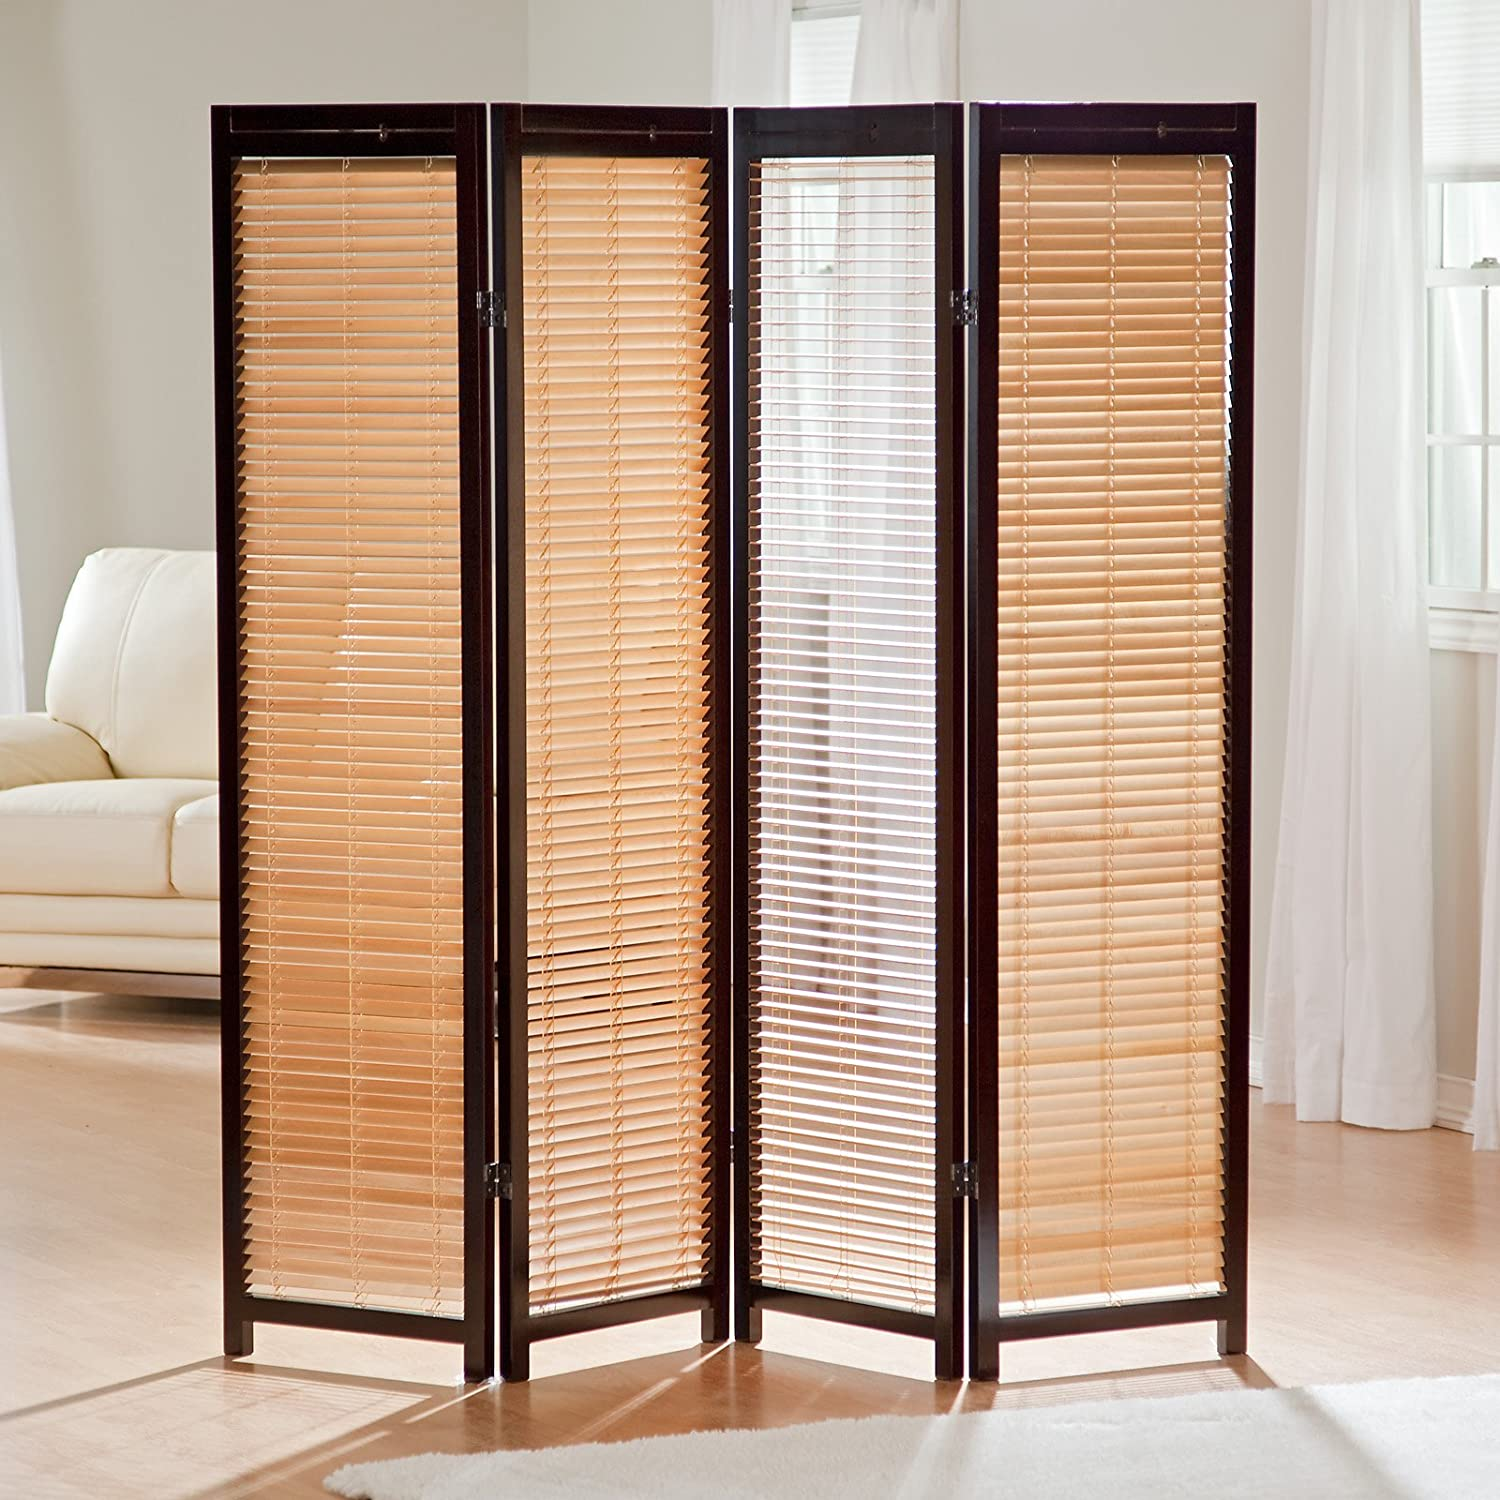 Amazon.com: Tranquility Wooden Shutter Room Divider: Industrial ...